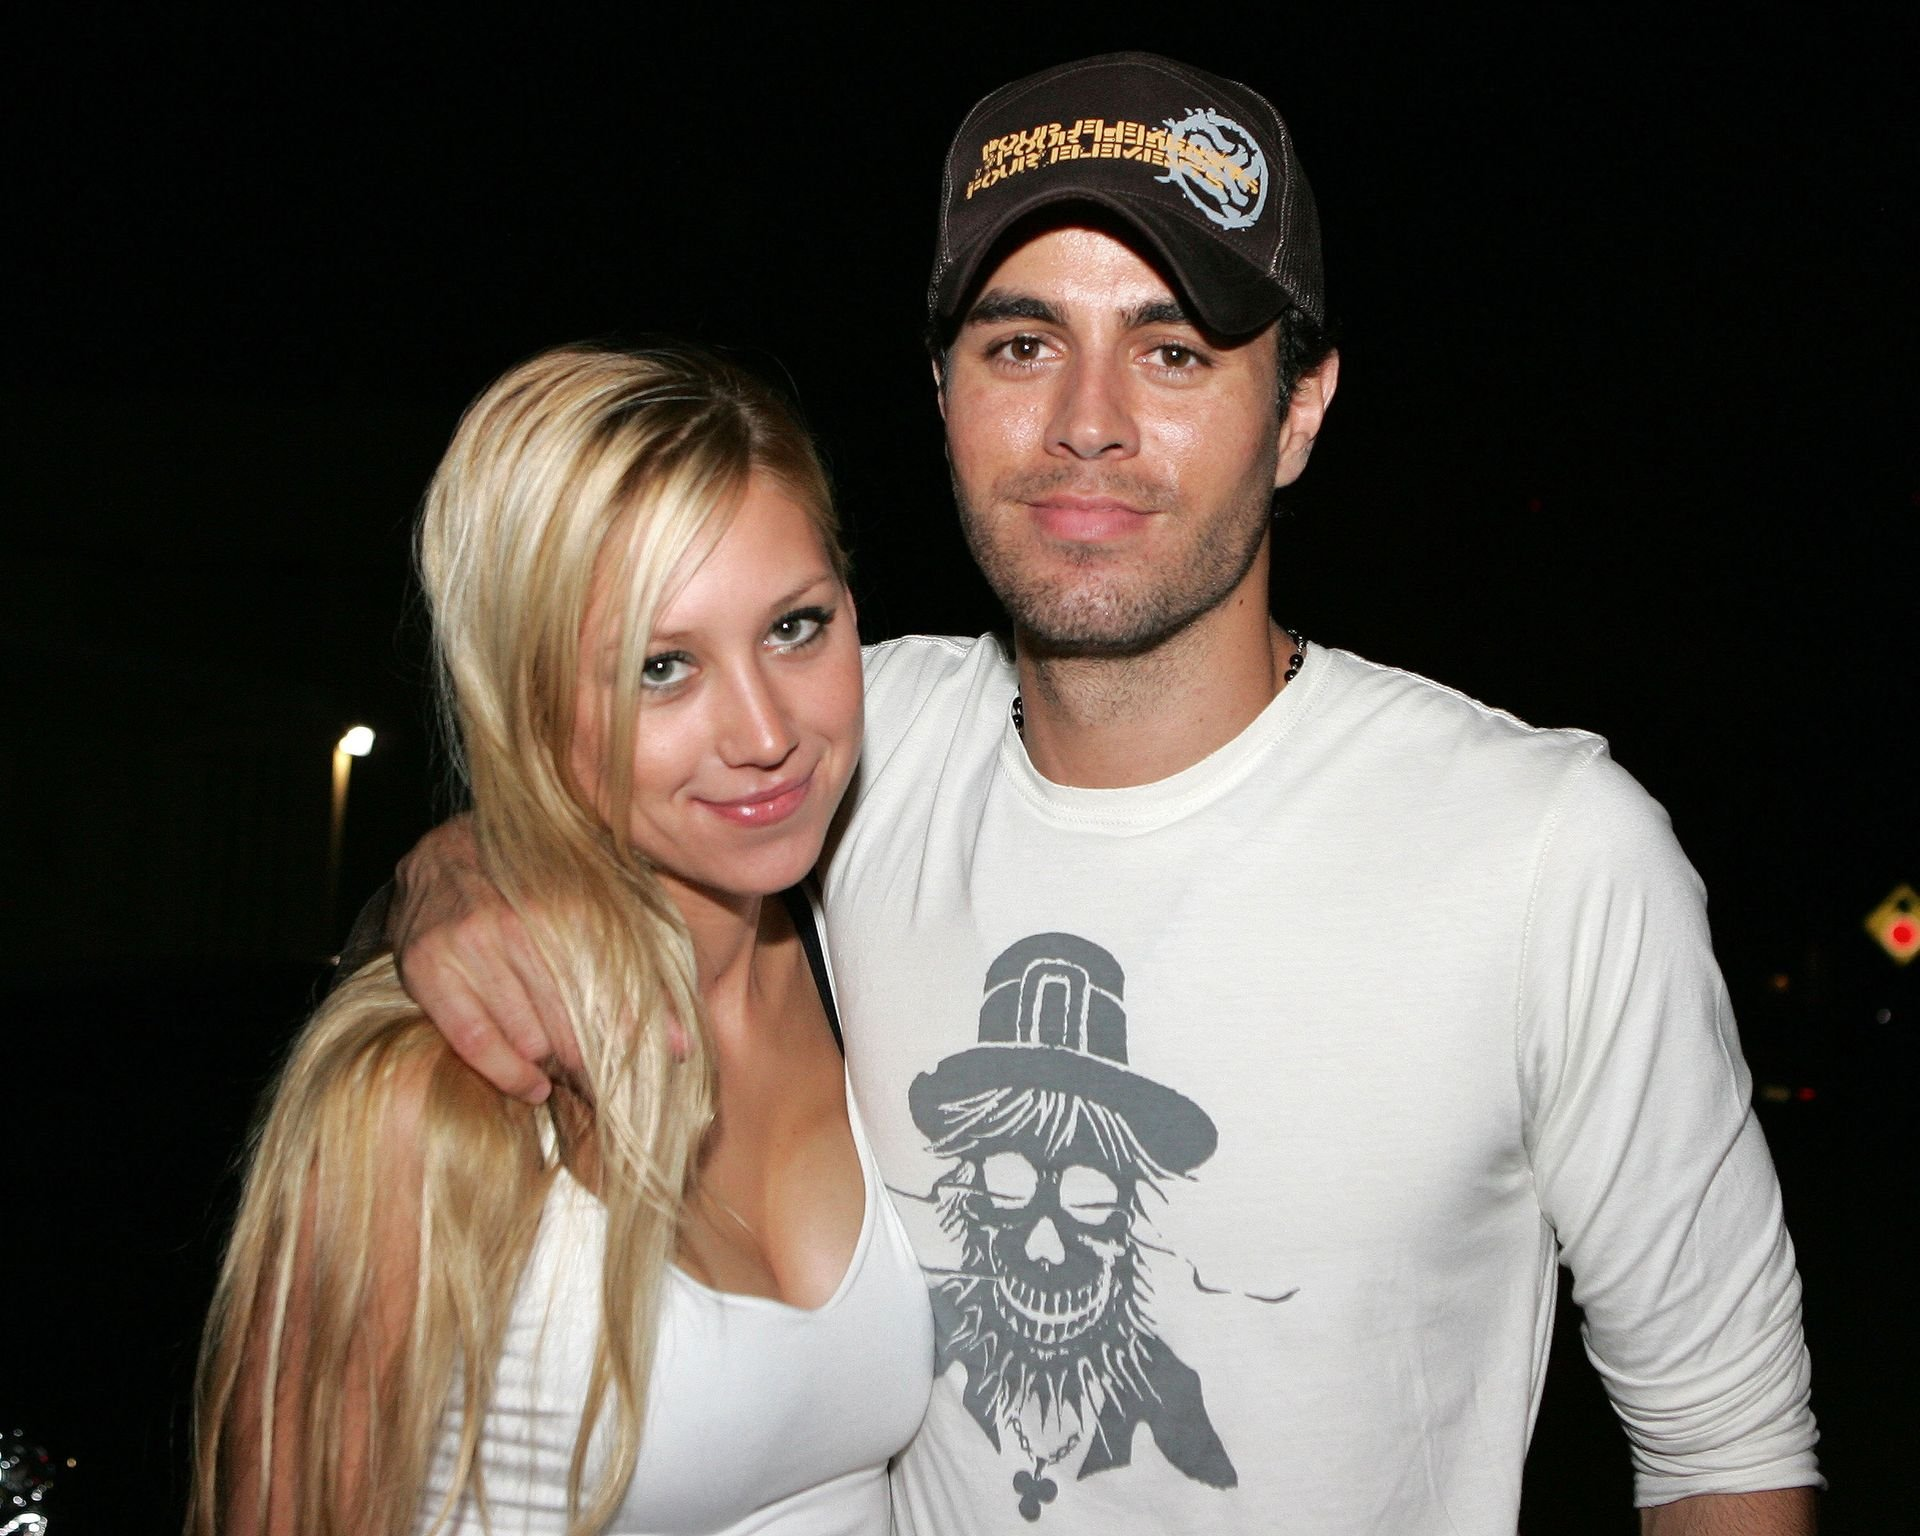 Tennis player Anna Kournikova and singer Enrique Iglesias leave Big Pink restaurant during the early morning hours on June 16, 2006 | Photo: Getty Images